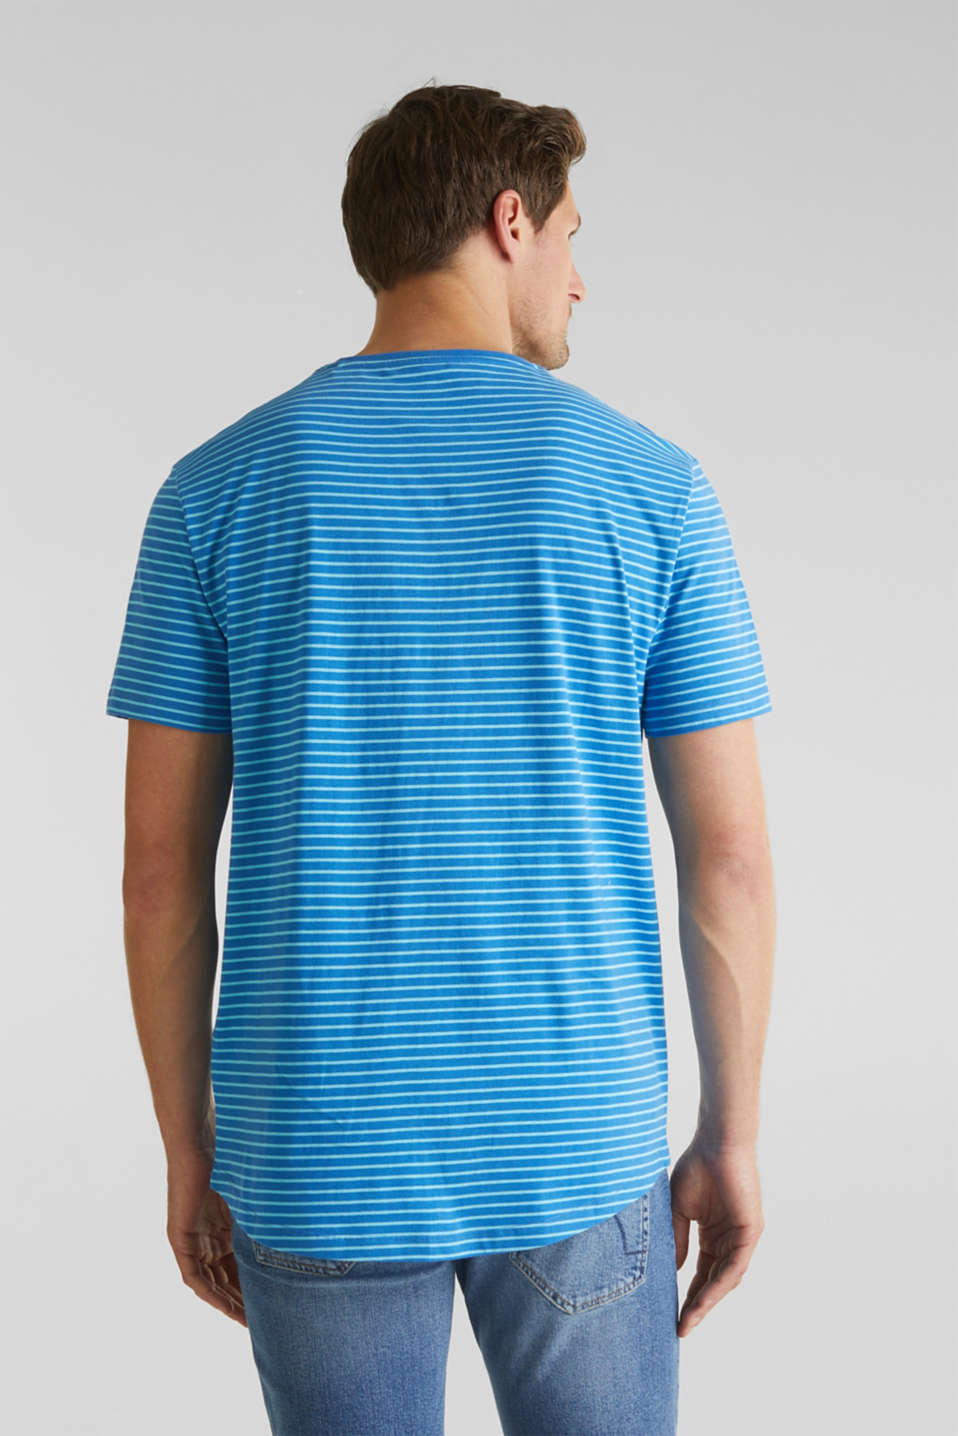 Jersey T-shirt with stripes, 100% cotton, BLUE 3, detail image number 3